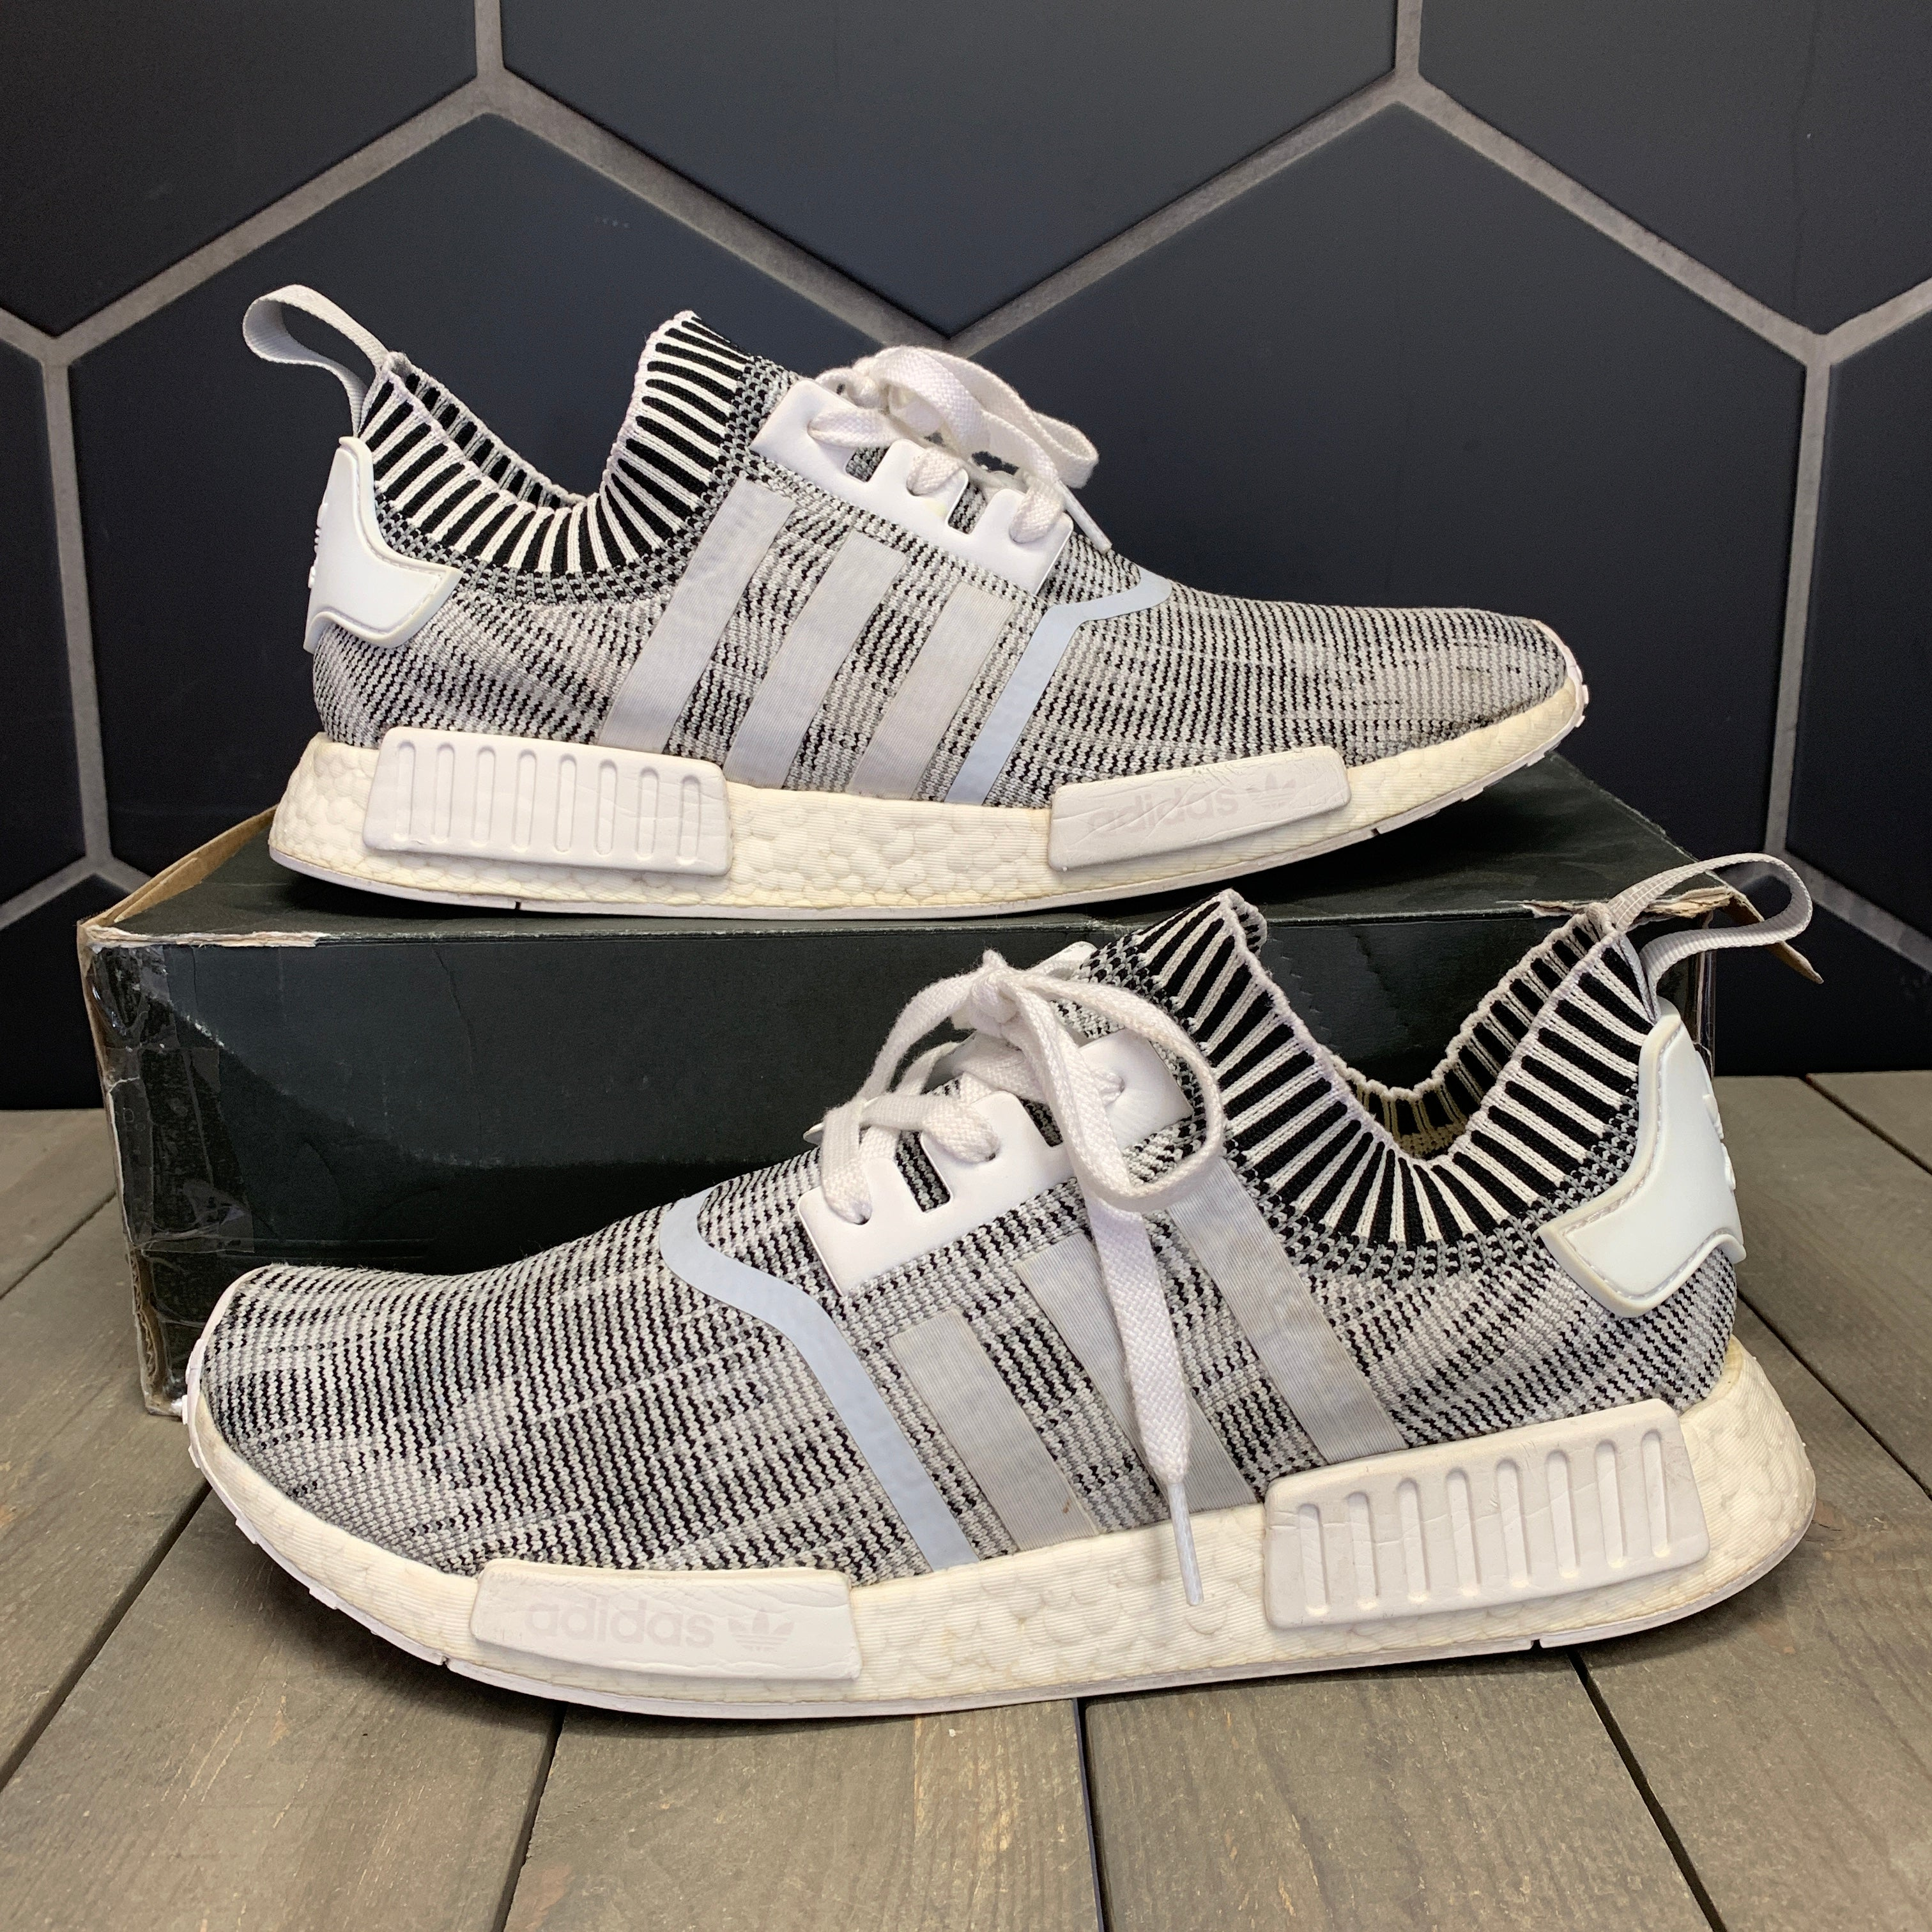 Used W/ Damaged Box! Adidas NMD R1 PK White Black Size 12